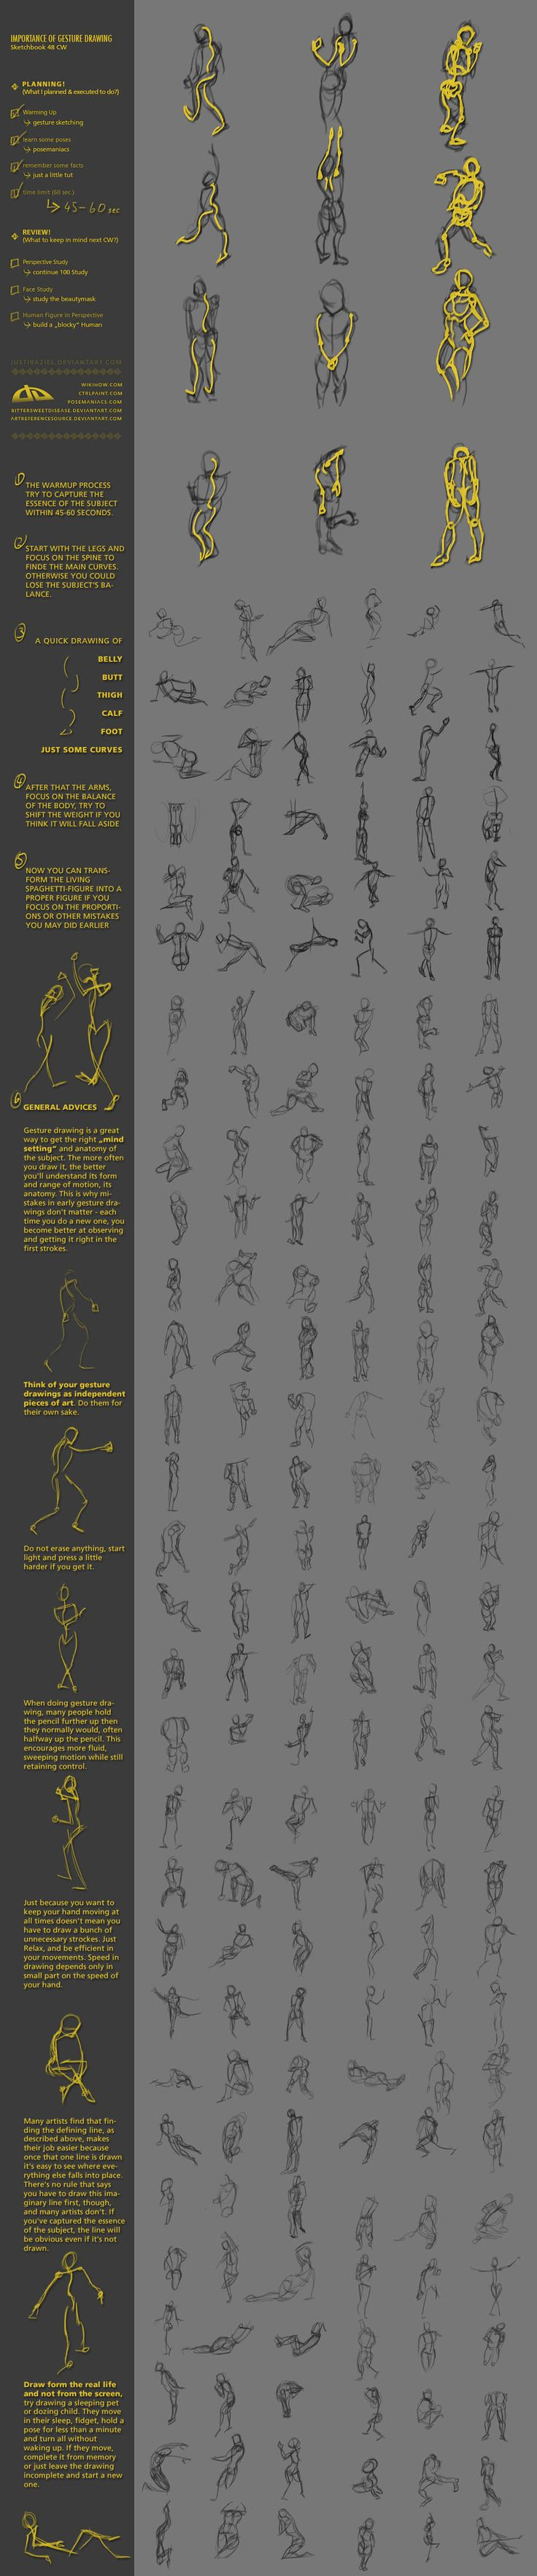 "#Tutorial ""Importance of gesture drawing Sketchbook 48 CW"" by JustIRaziel.deviantart.com on #deviantART"